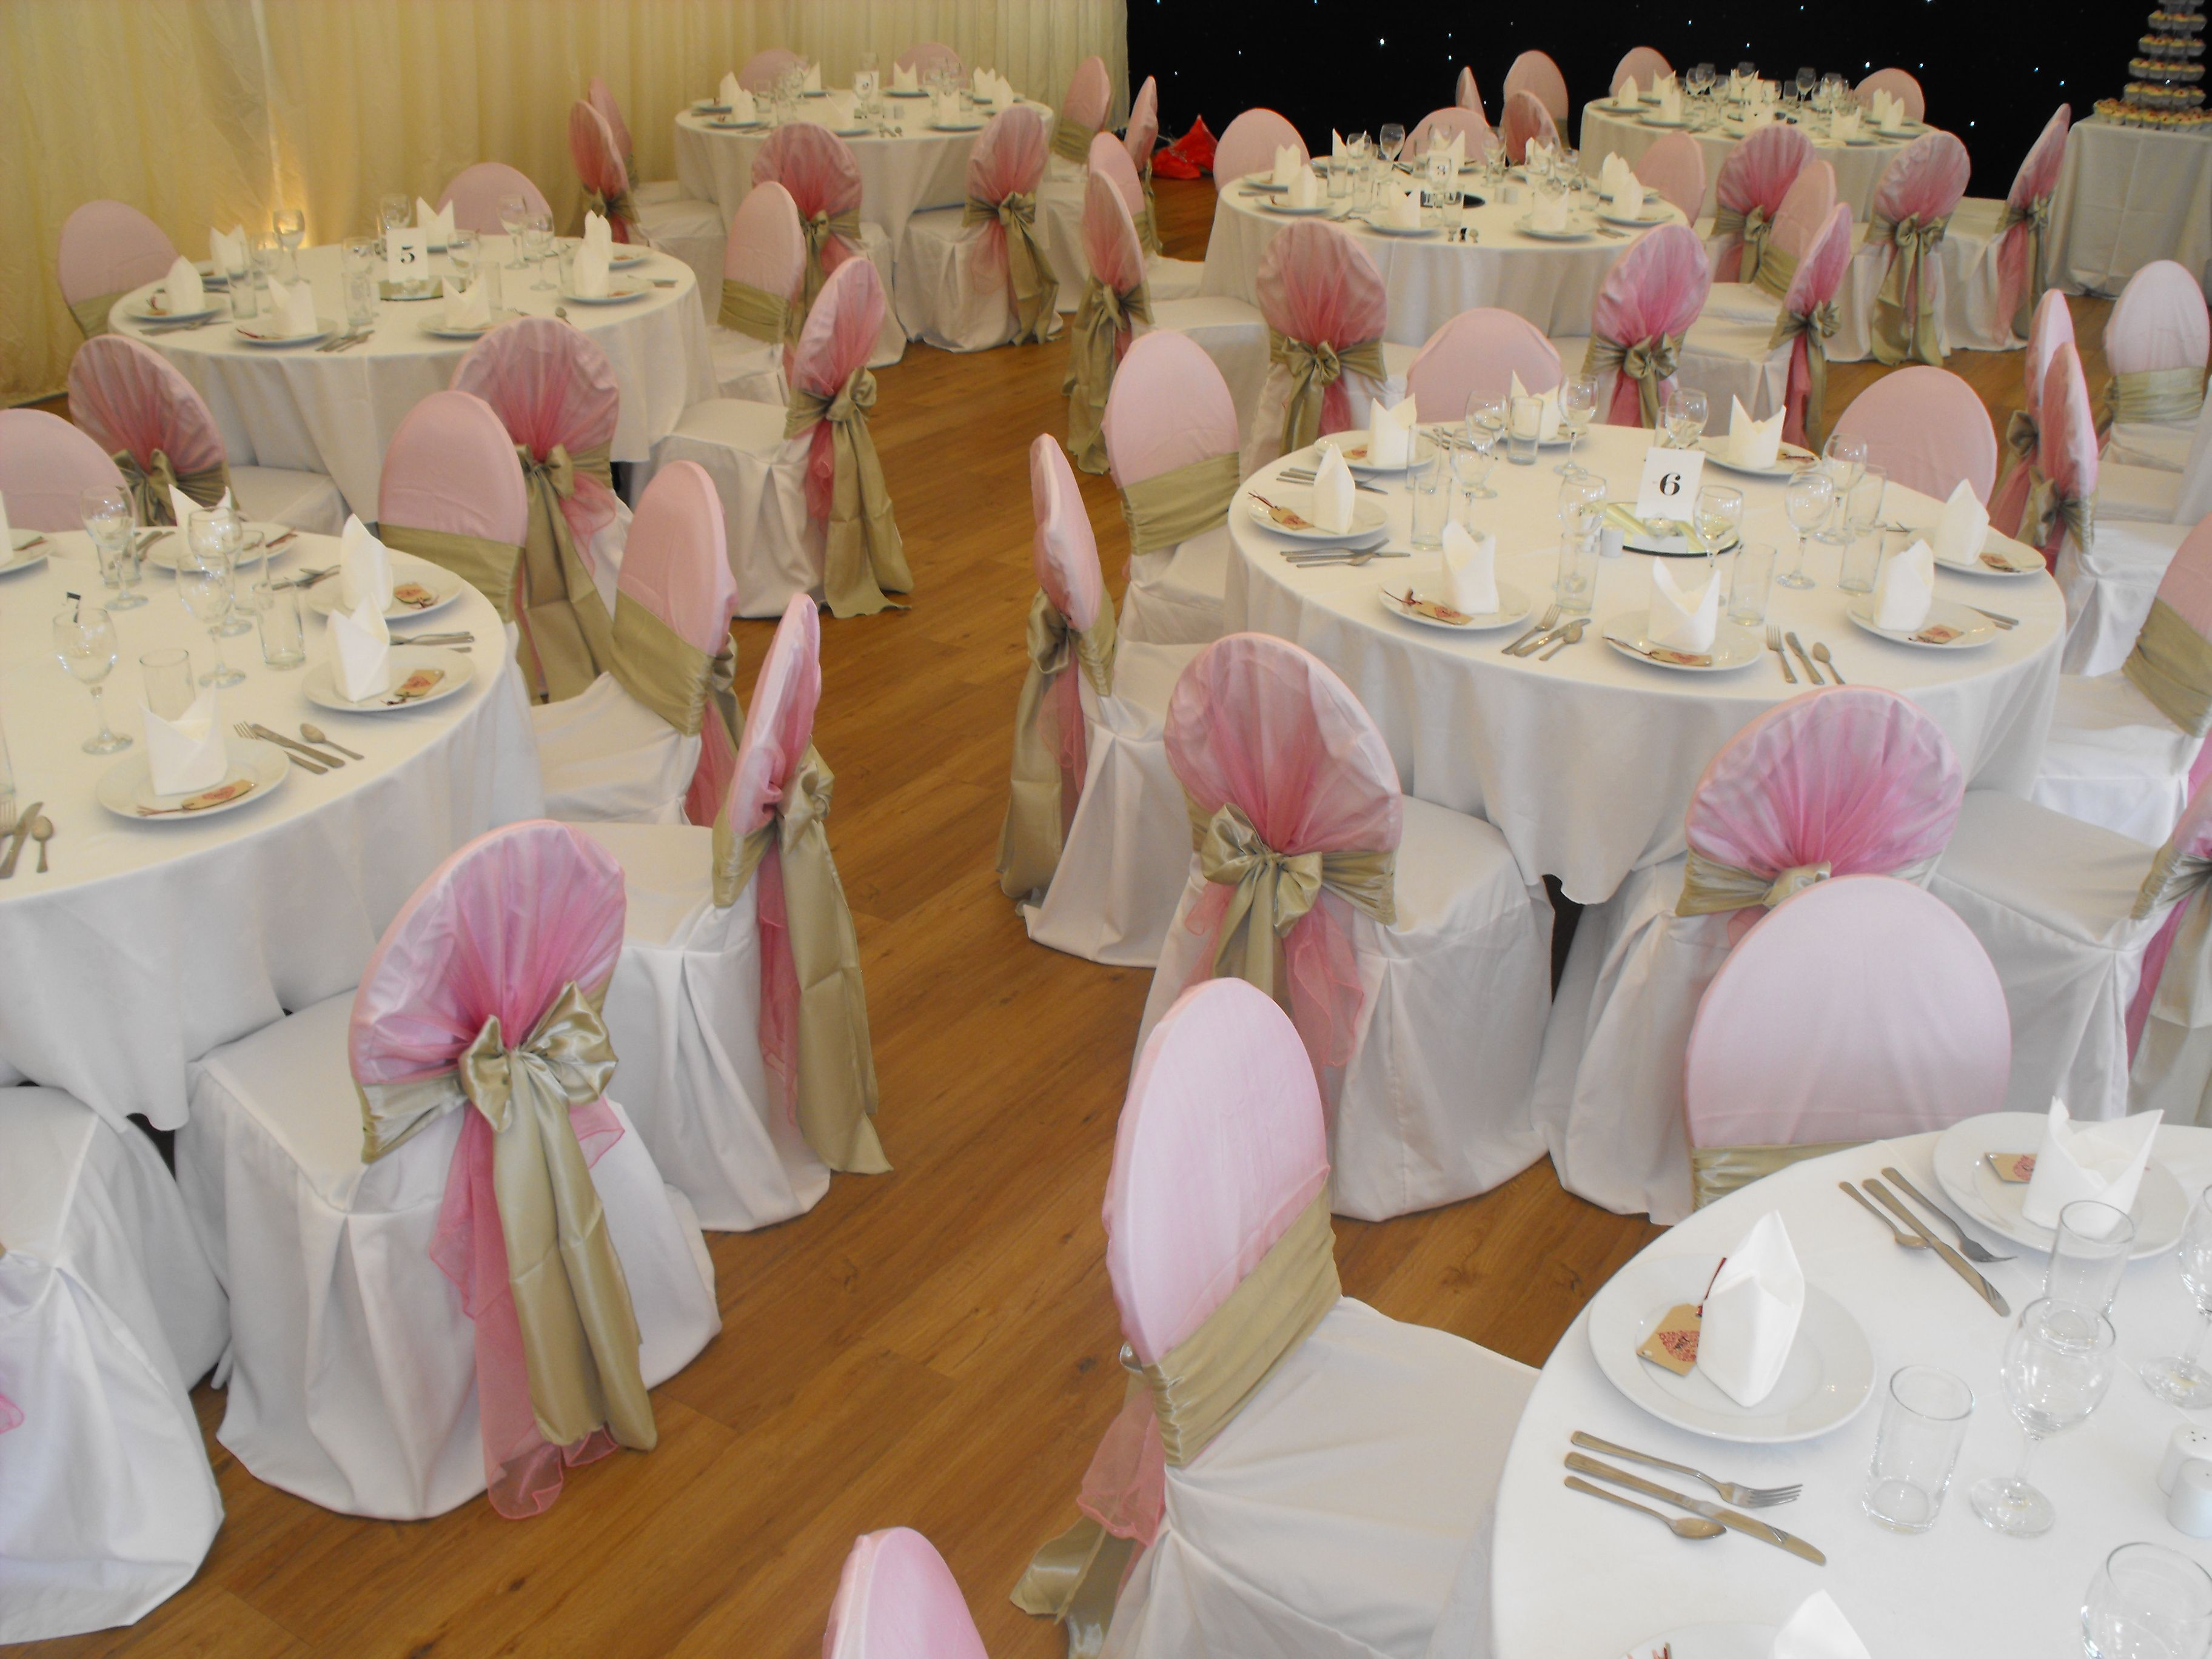 Baby Pink Organza Shawl and Sage Green Satin Bow on White Chair